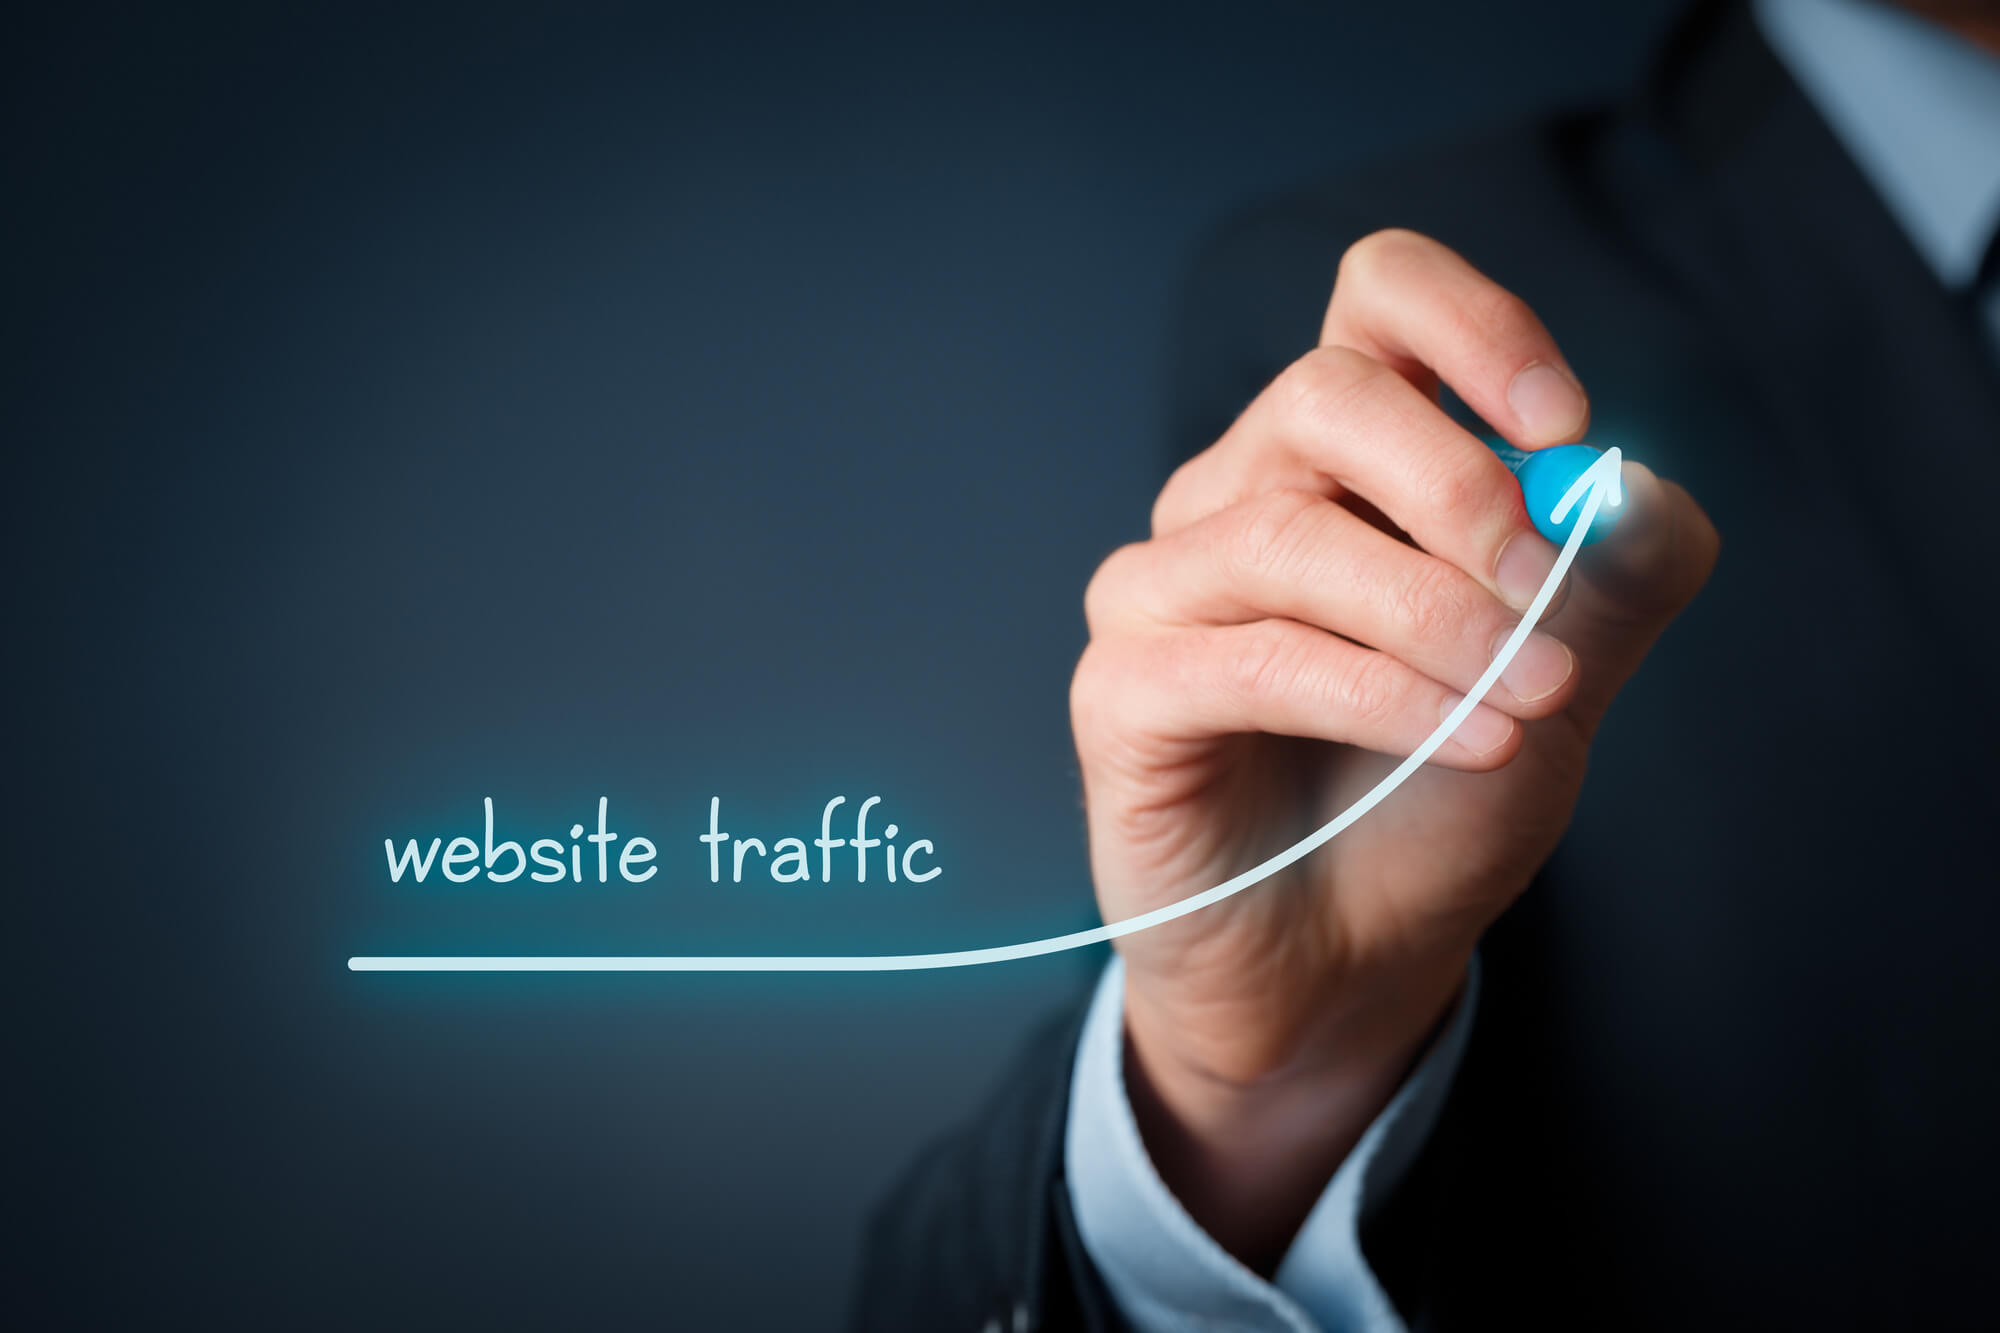 increase website traffic fast